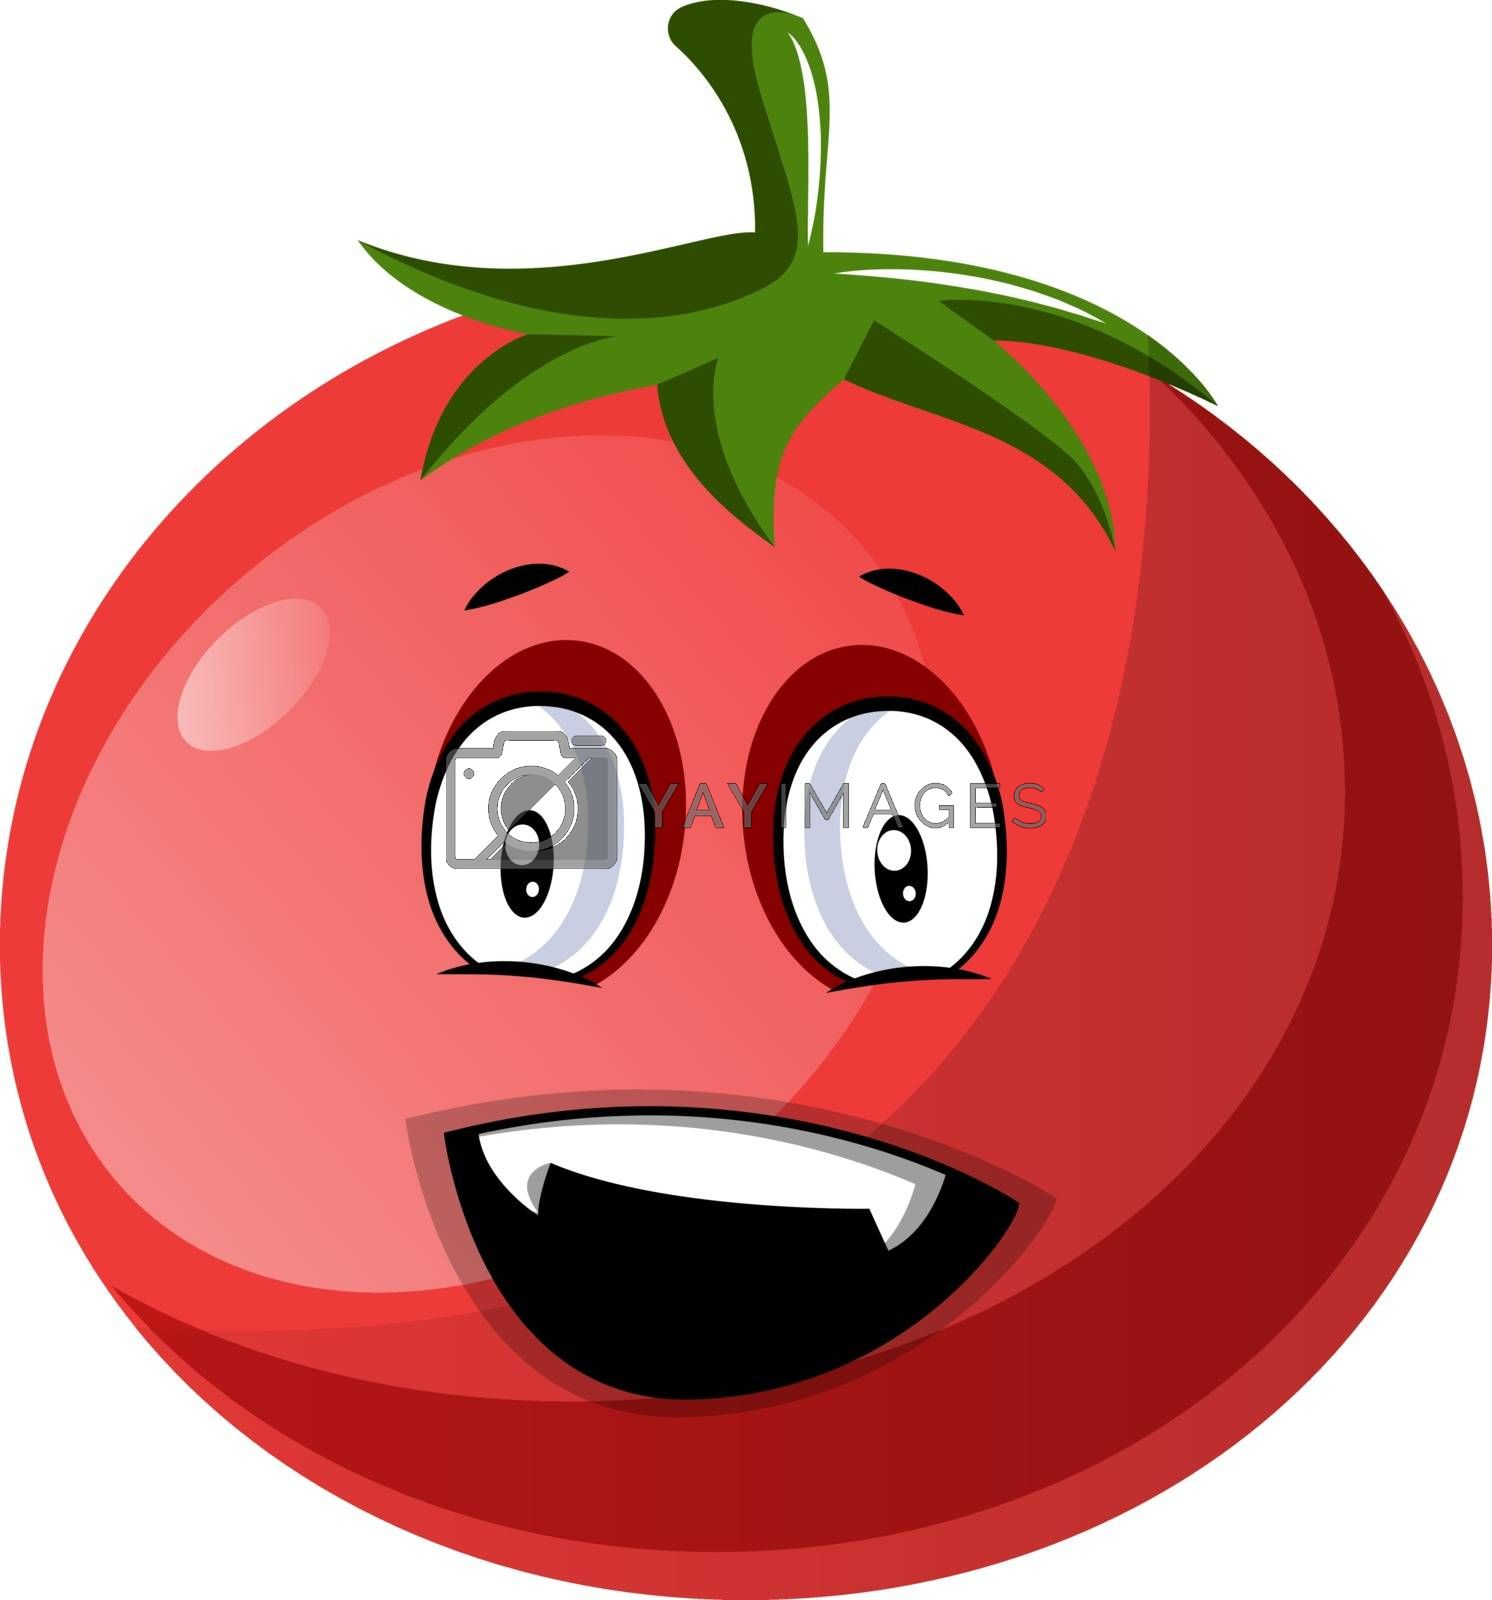 Royalty free image of Red tomato that looks very happy illustration vector on white ba by Morphart